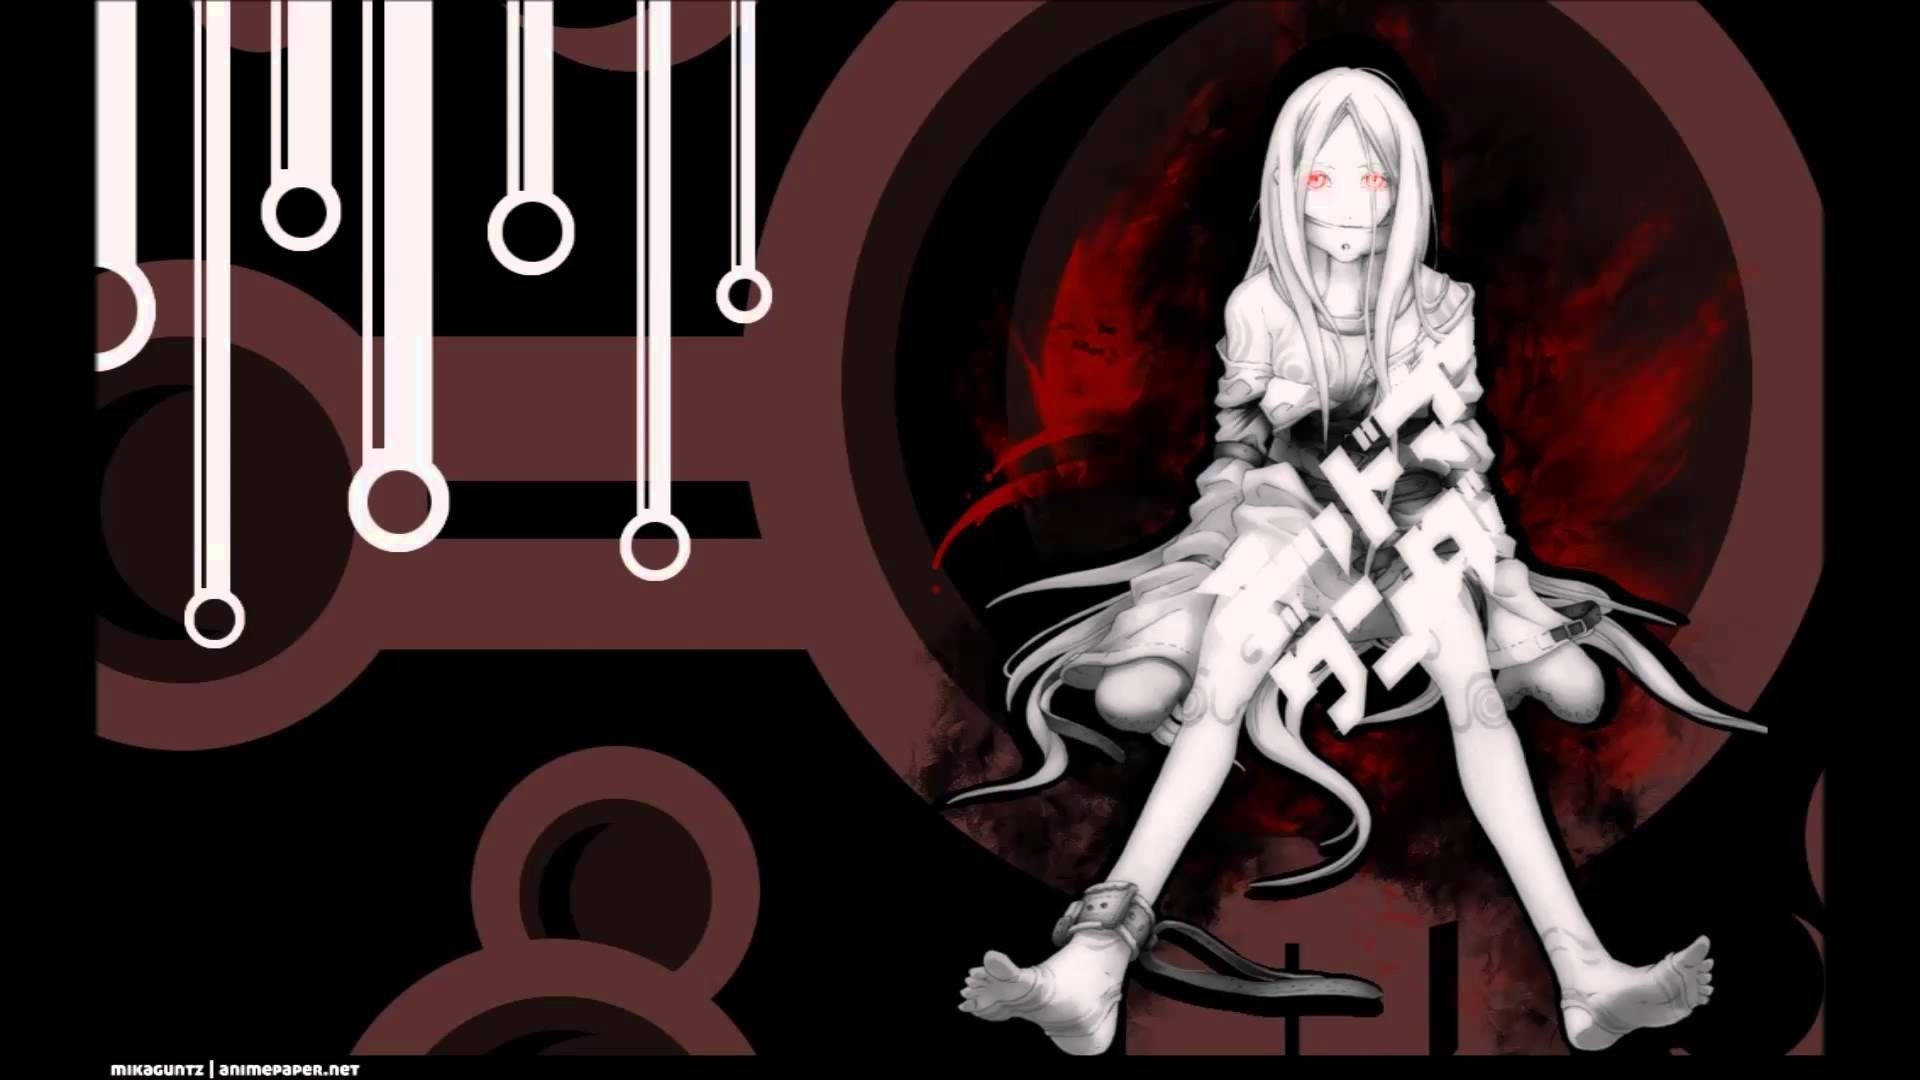 "1920x1080 1032x774 Shiro Wallpaper- Deadman Wonderland by FoxNinja18 on DeviantArt"">"